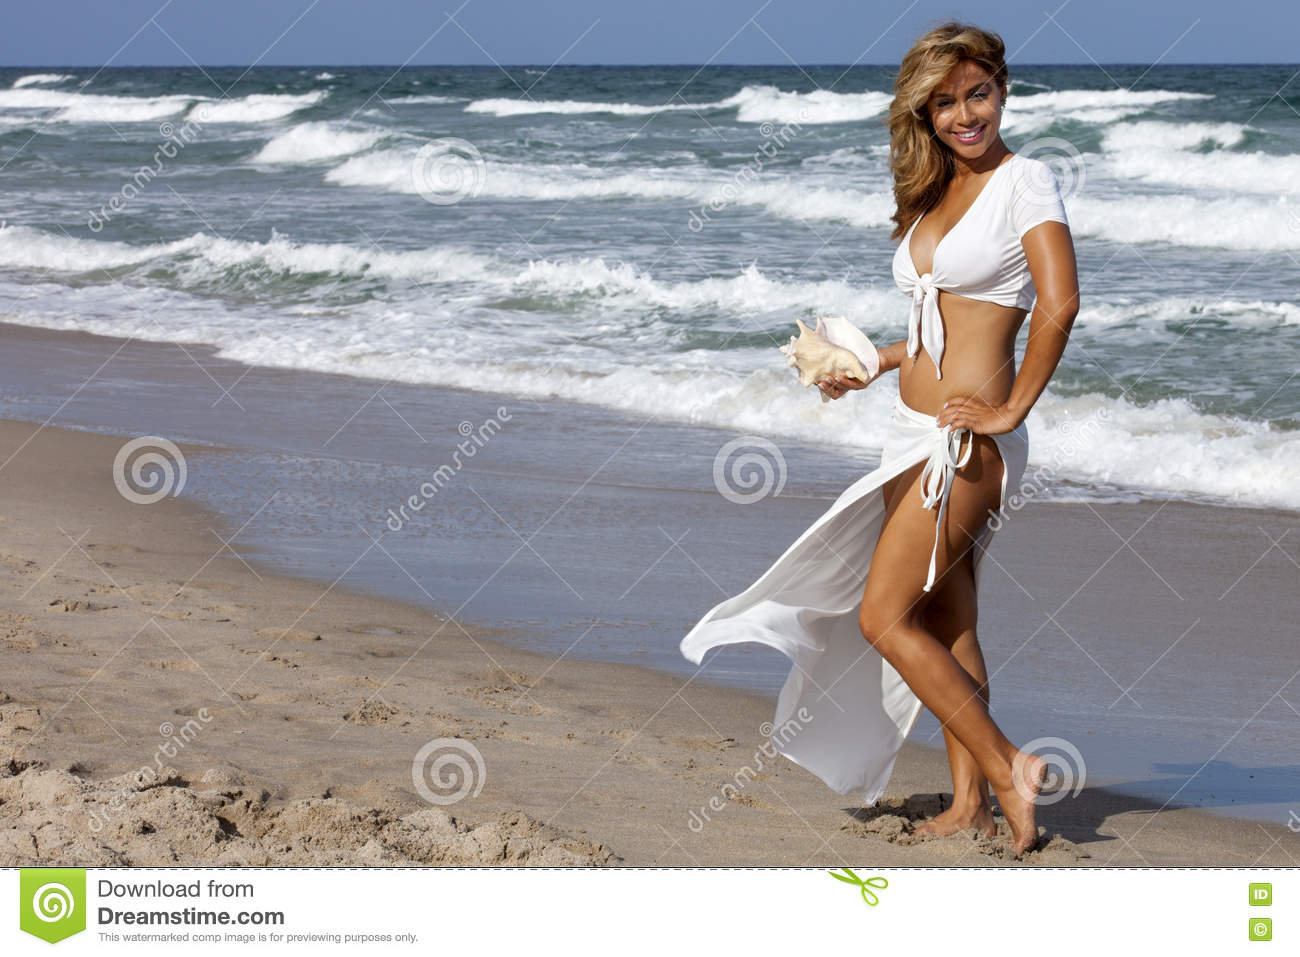 89f25d4b16 Beautiful woman walking on beach in a white outfit carrying a seashell